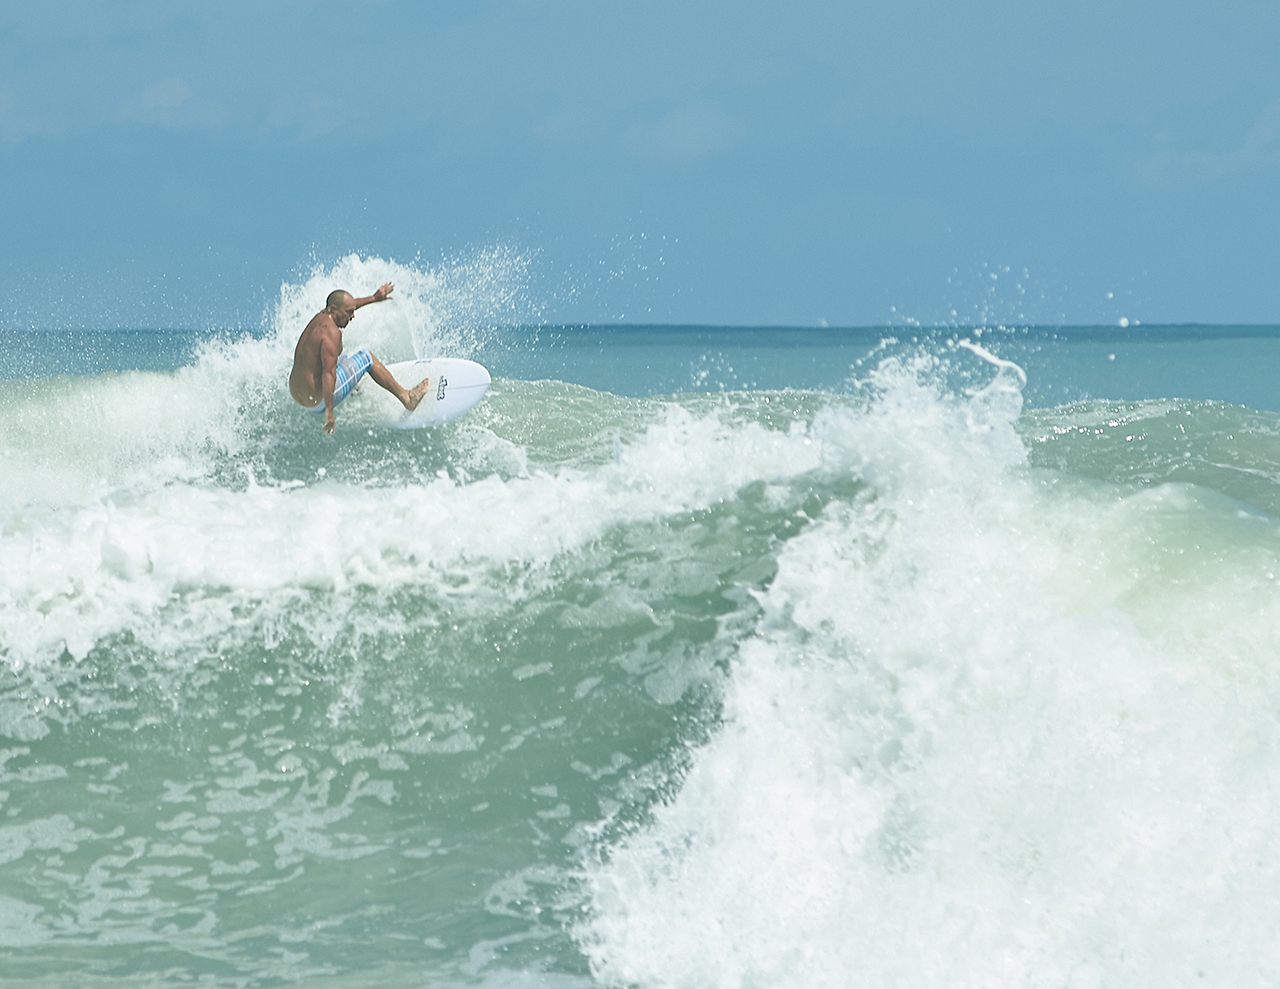 north-jensen-beach-florida-WordInTown-Jay-Romero-photgraphy-surfers-road-trip-9